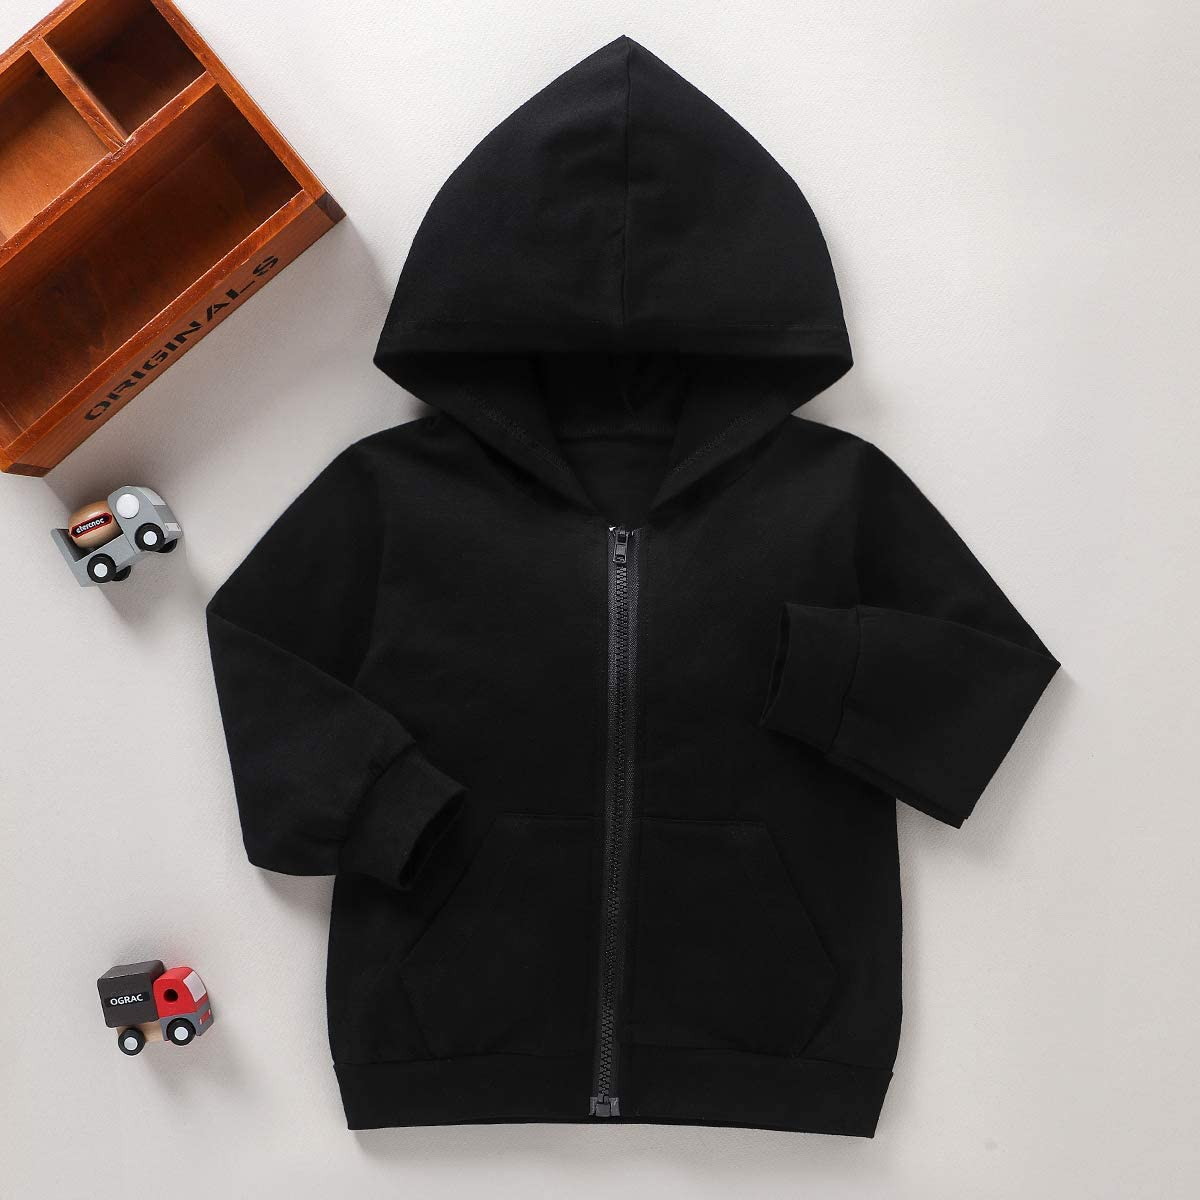 Toddler Boy Girl Clothes Letter Printed Sweatshirt Hooded Jersey Casual Tops Clothes Outfit